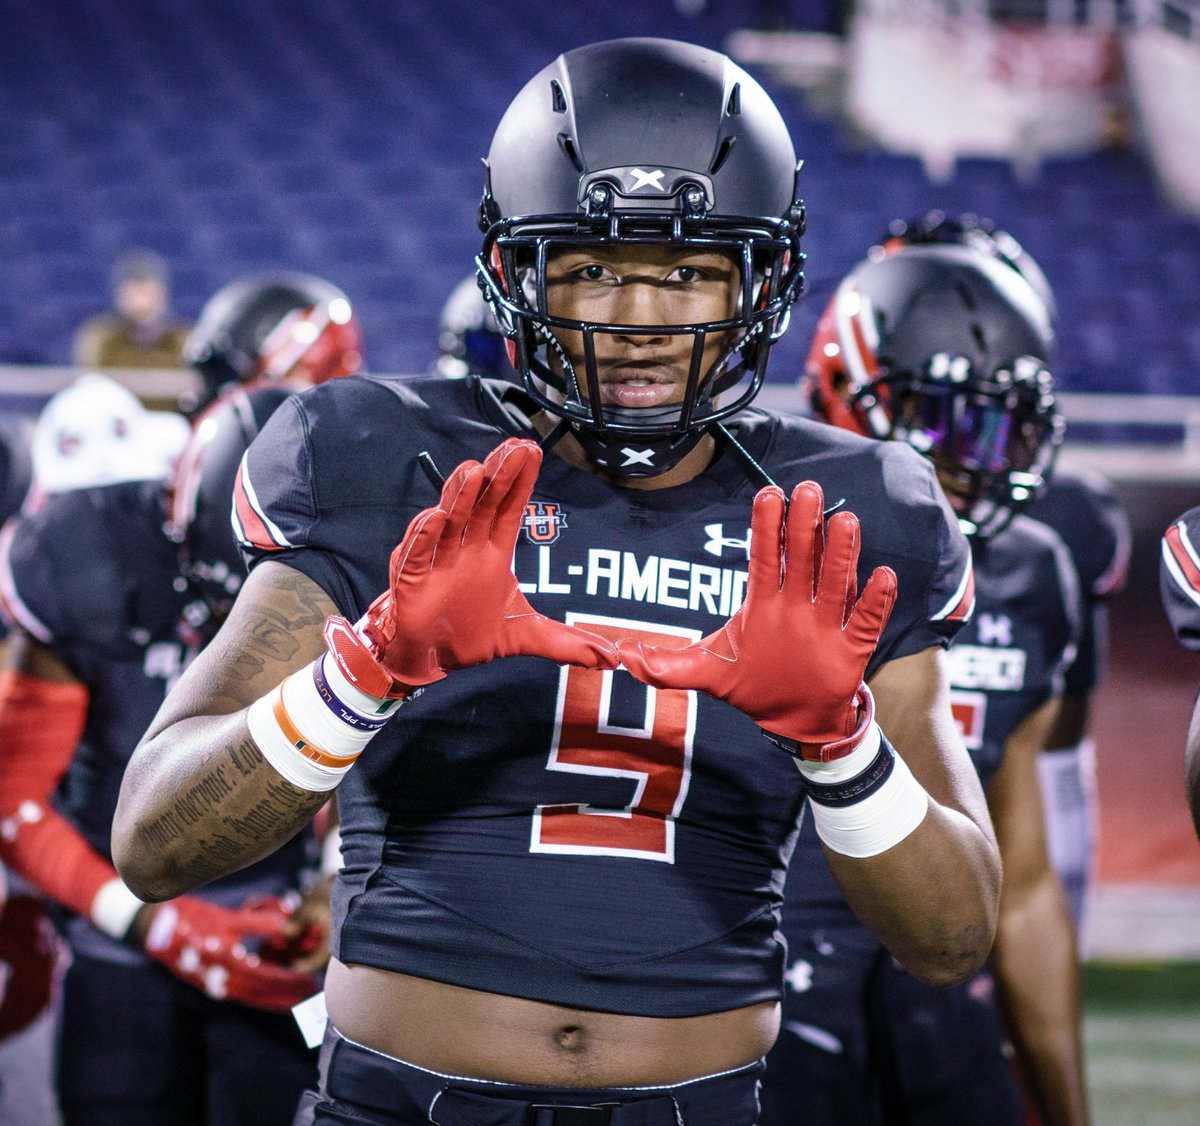 Our #FridayFocus this week is on @CanesFootball TE and #UAALLAMERICA standout @Brevinjordan! After catching 3 balls 🏈🏈🏈 for 51 yards and a TD last week, #9 is healthy and ready to show out on PRIME TIME, tomorrow night! #ItsAllAboutTheU  @UAFootball #TheOnlyWayIsThrough https://t.co/AQm9unAZt7